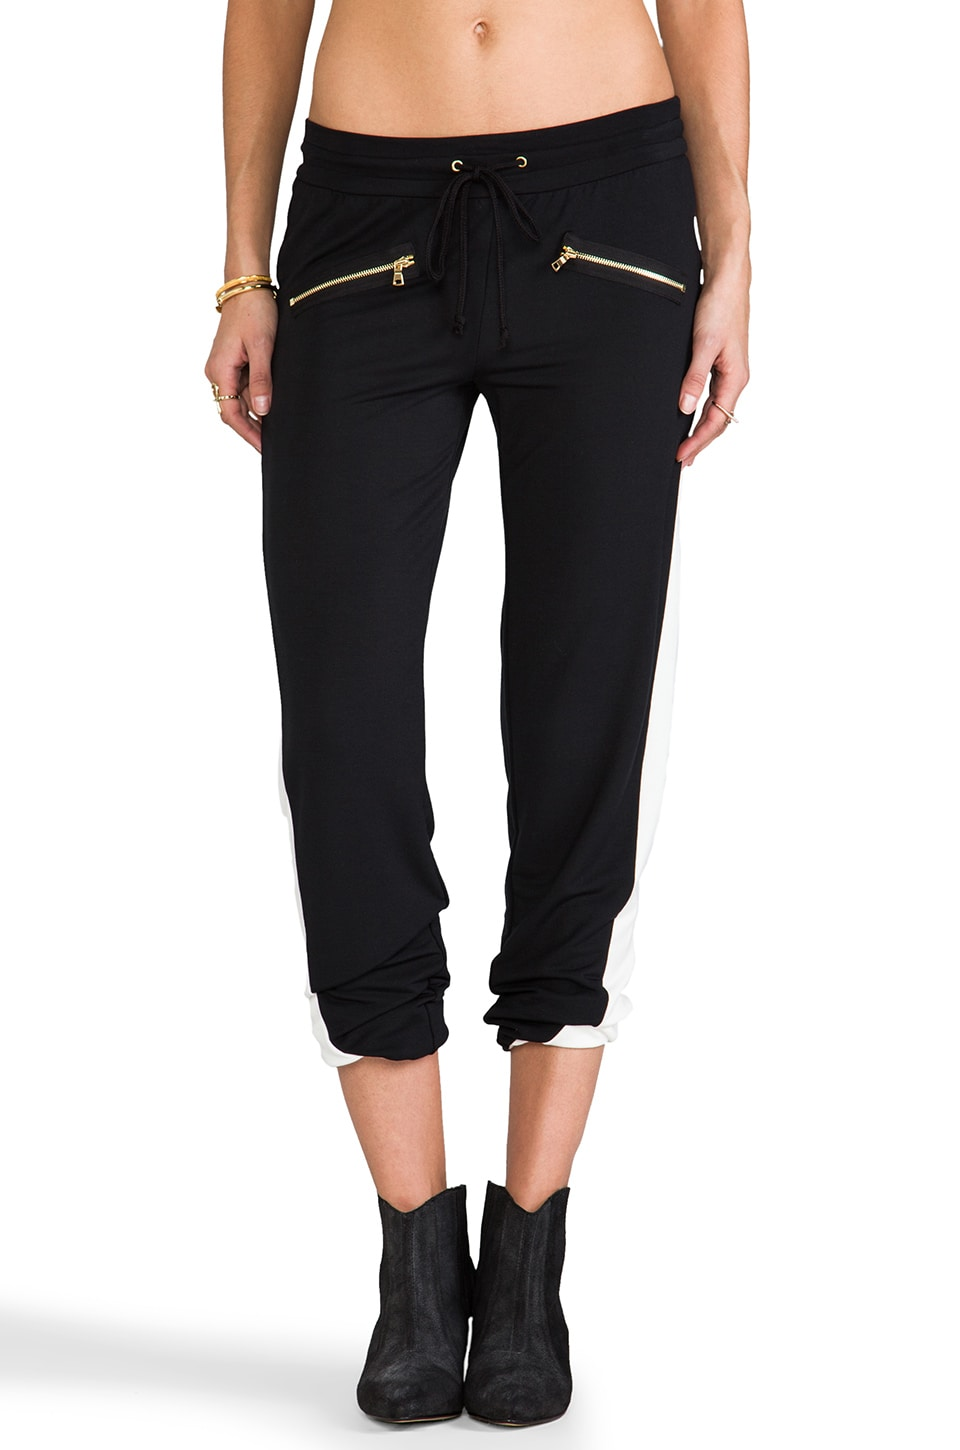 TOWNSEN Swift Fleece Pants in Black & White